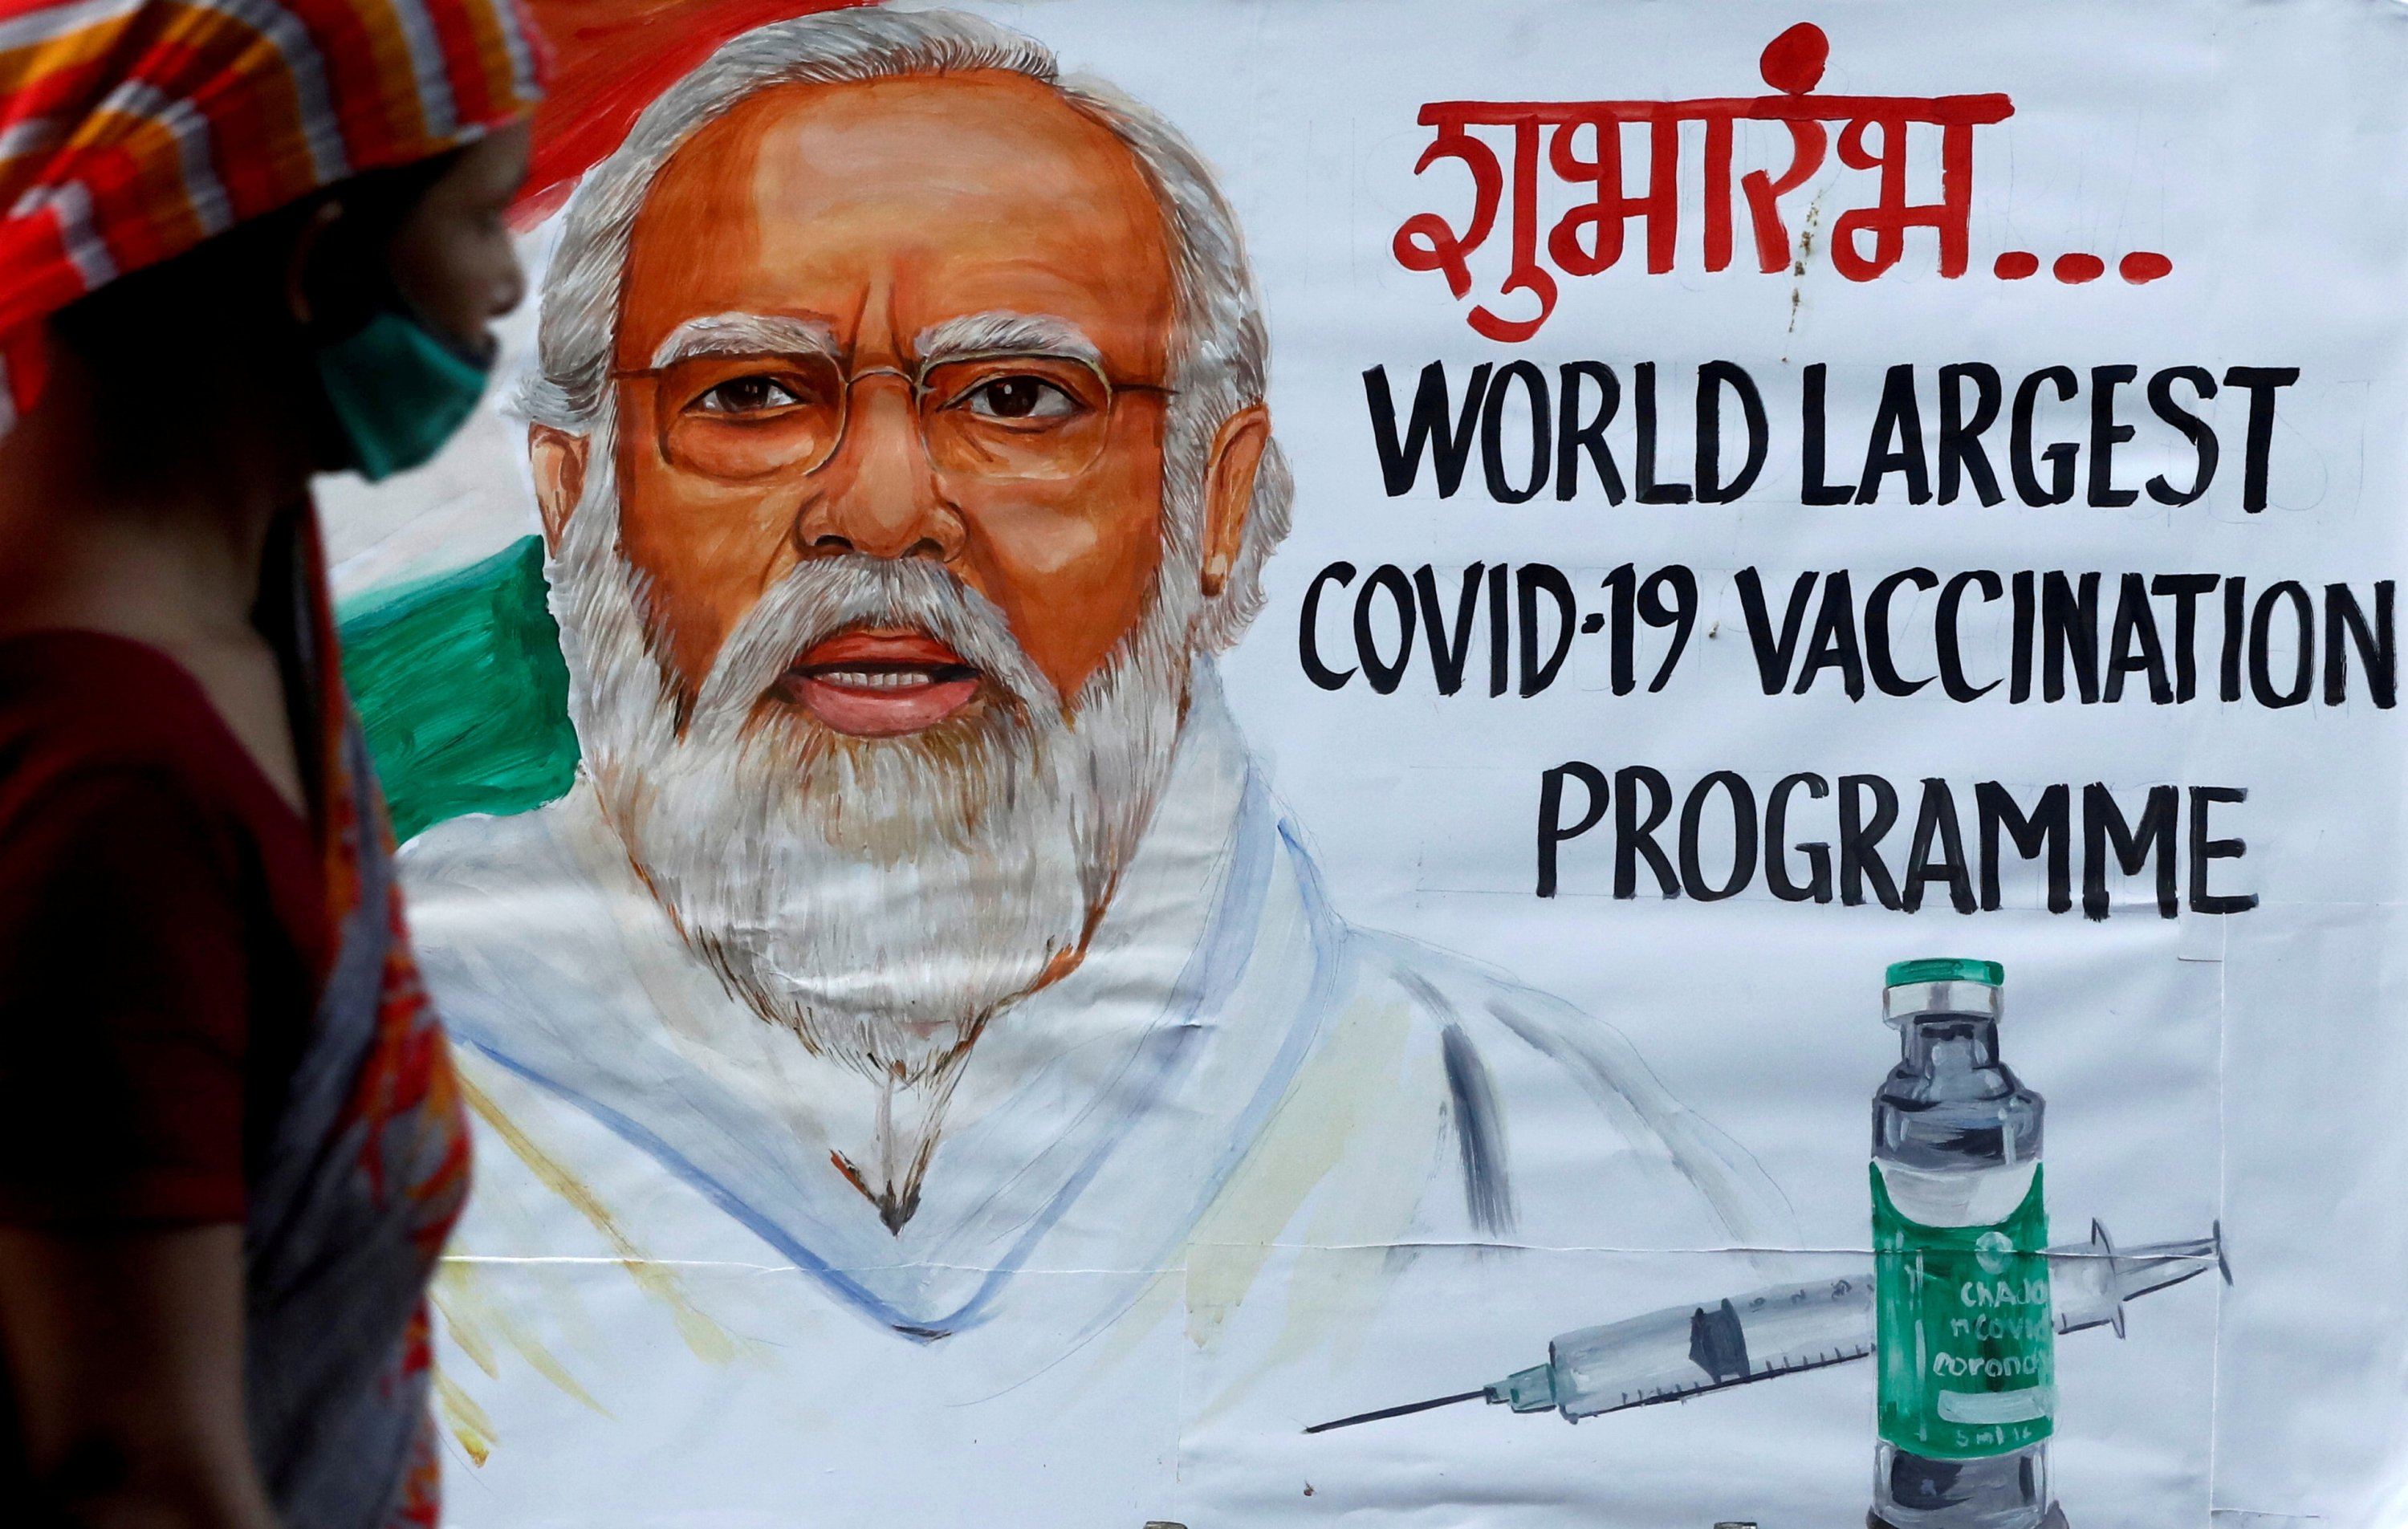 A woman walks past a painting of Indian Prime Minister Narendra Modi a day before the inauguration of the COVID-19 vaccination drive, on a street in Mumbai, India, Jan. 15, 2021. (REUTERS/File Photo)